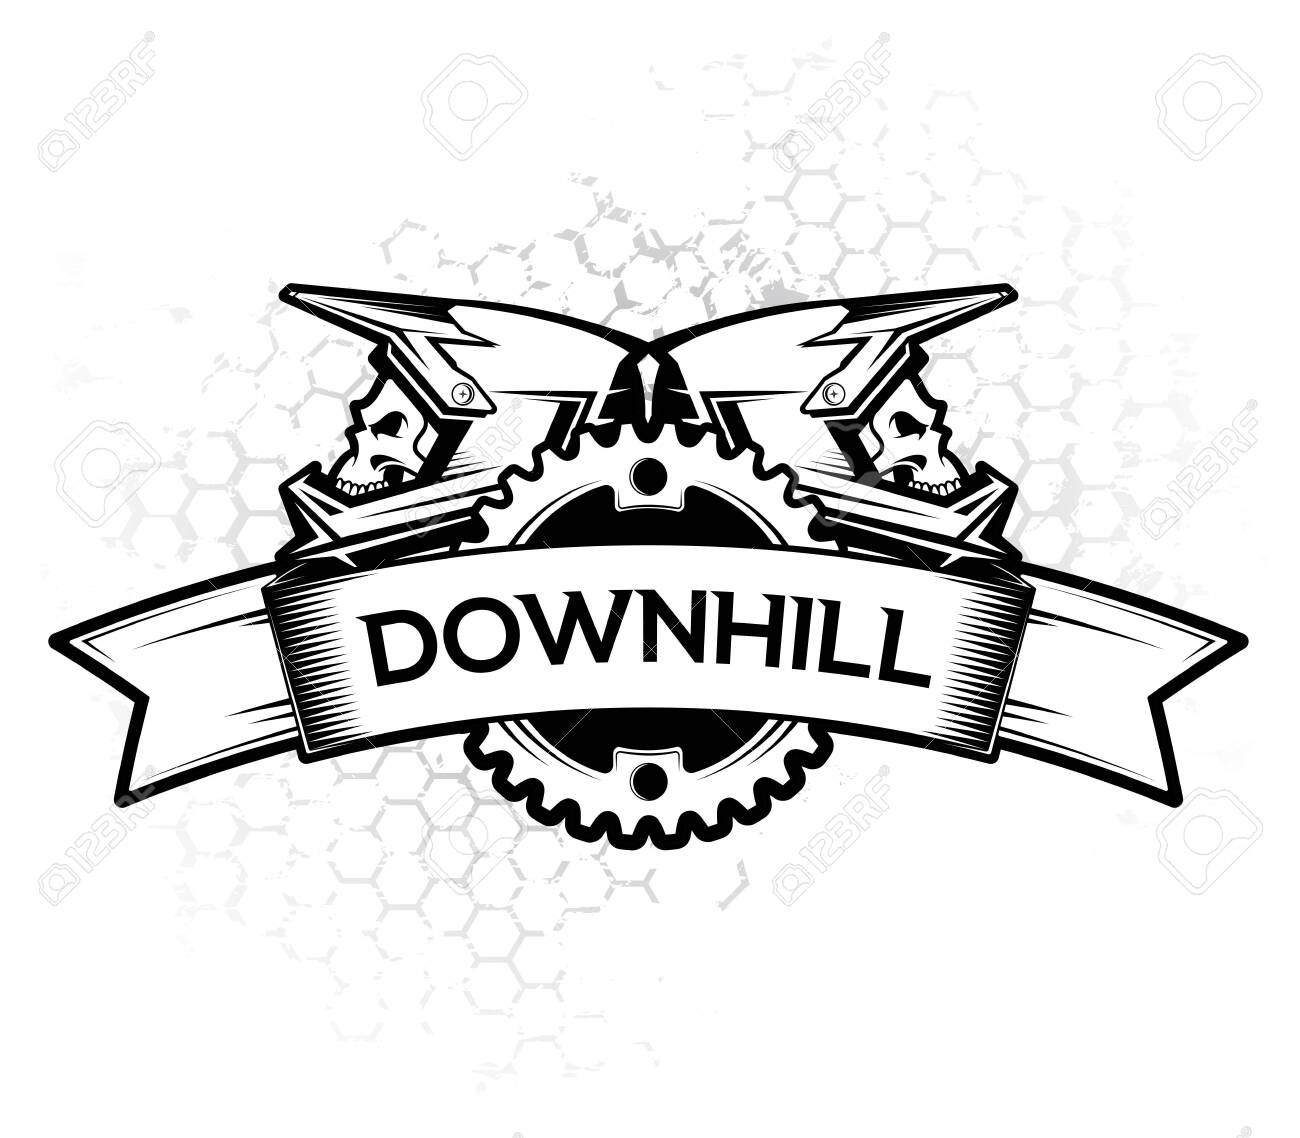 Logo design with ribbon chain ring and full face helmets. Downhill Motocros Label Design. Downhill, Freeride, Enduro, MTB. Vector Ilustration. - 133535236